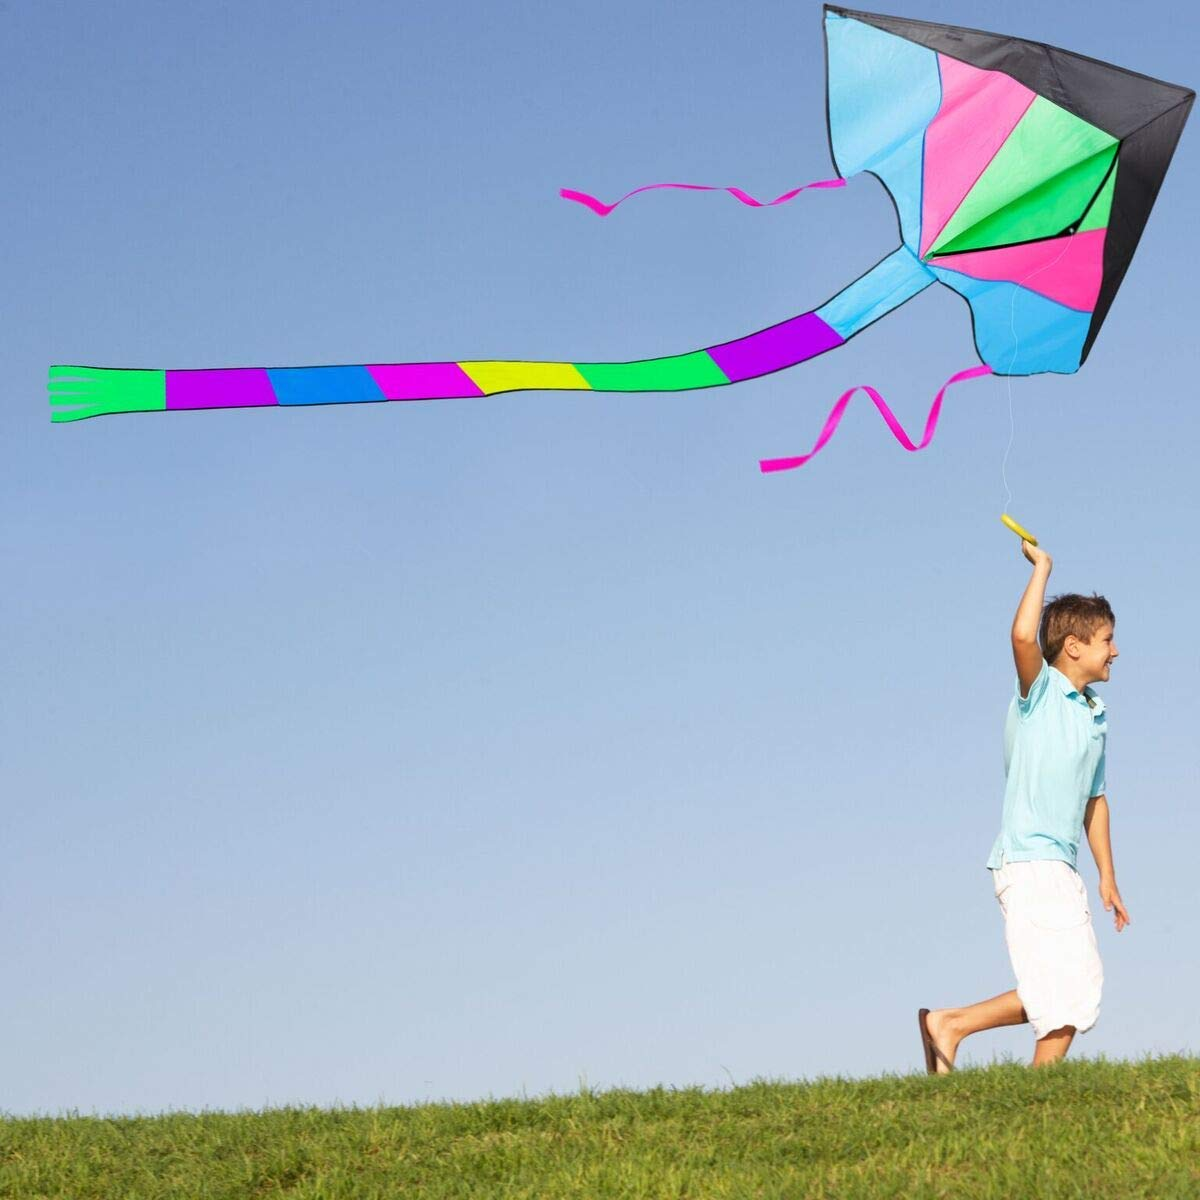 LIDERSTAR Huge Kite for Kids and Adults -Big Rainbow Kite 61 Inches Wide – Long Tail 95 inch,100 Meter String -Easy to Fly Toy for Outdoor Games Beach and Activities -Good Plan for Memorable Fun